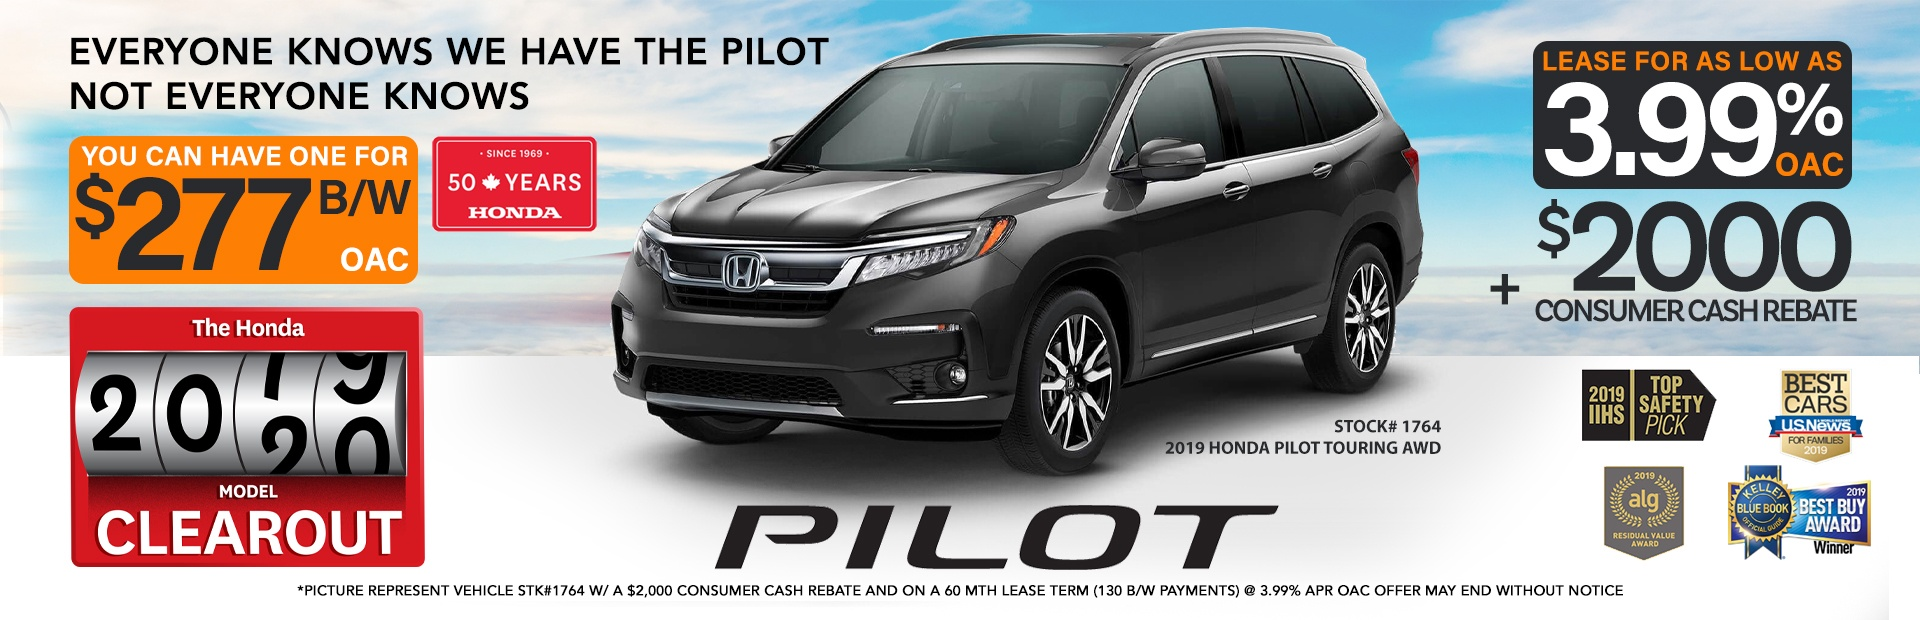 $2000 off in-stock 2019 Honda Pilots + Rates as low as 3.99%OAC (see in-store for details)